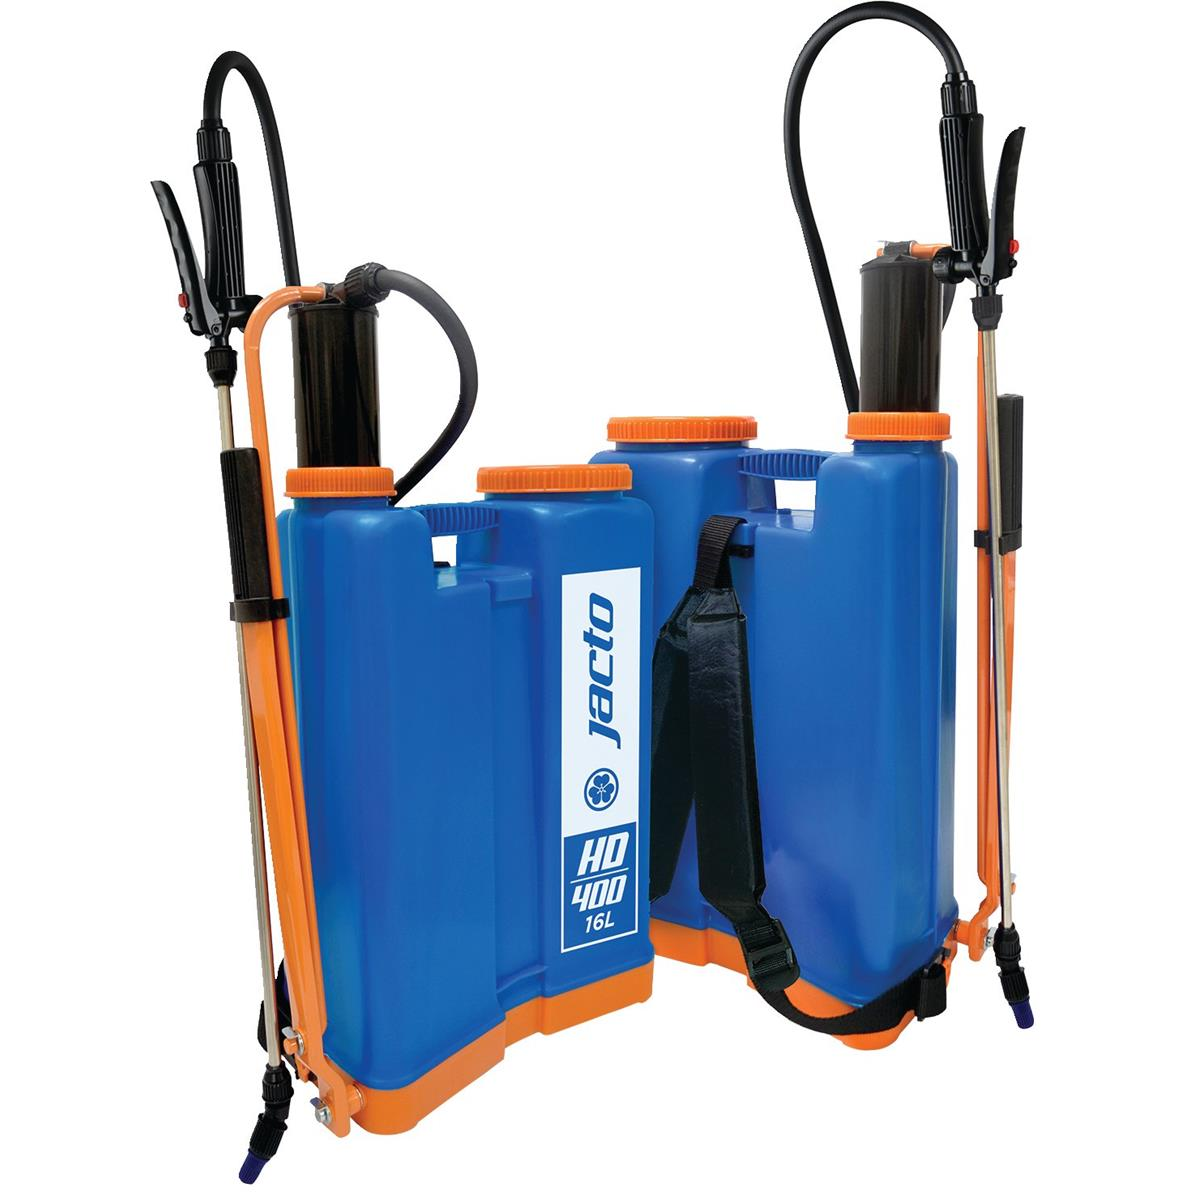 JACTO HD400 4-Gal. Backpack Sprayer